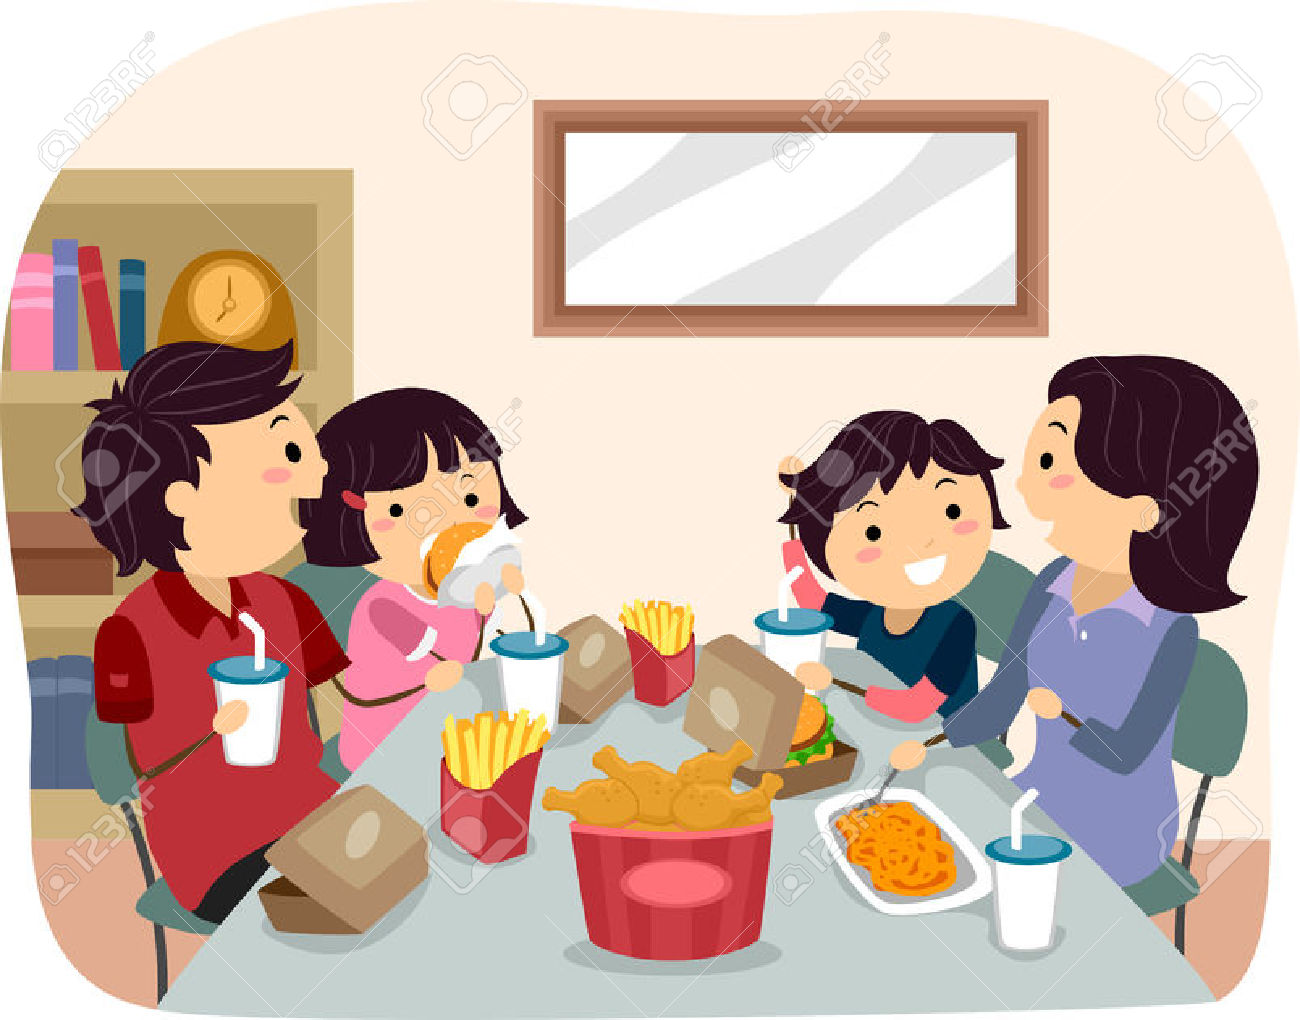 Familie beim essen clipart banner royalty free download Illustration Einer Familie Essen Fastfood Für Abendessen ... banner royalty free download